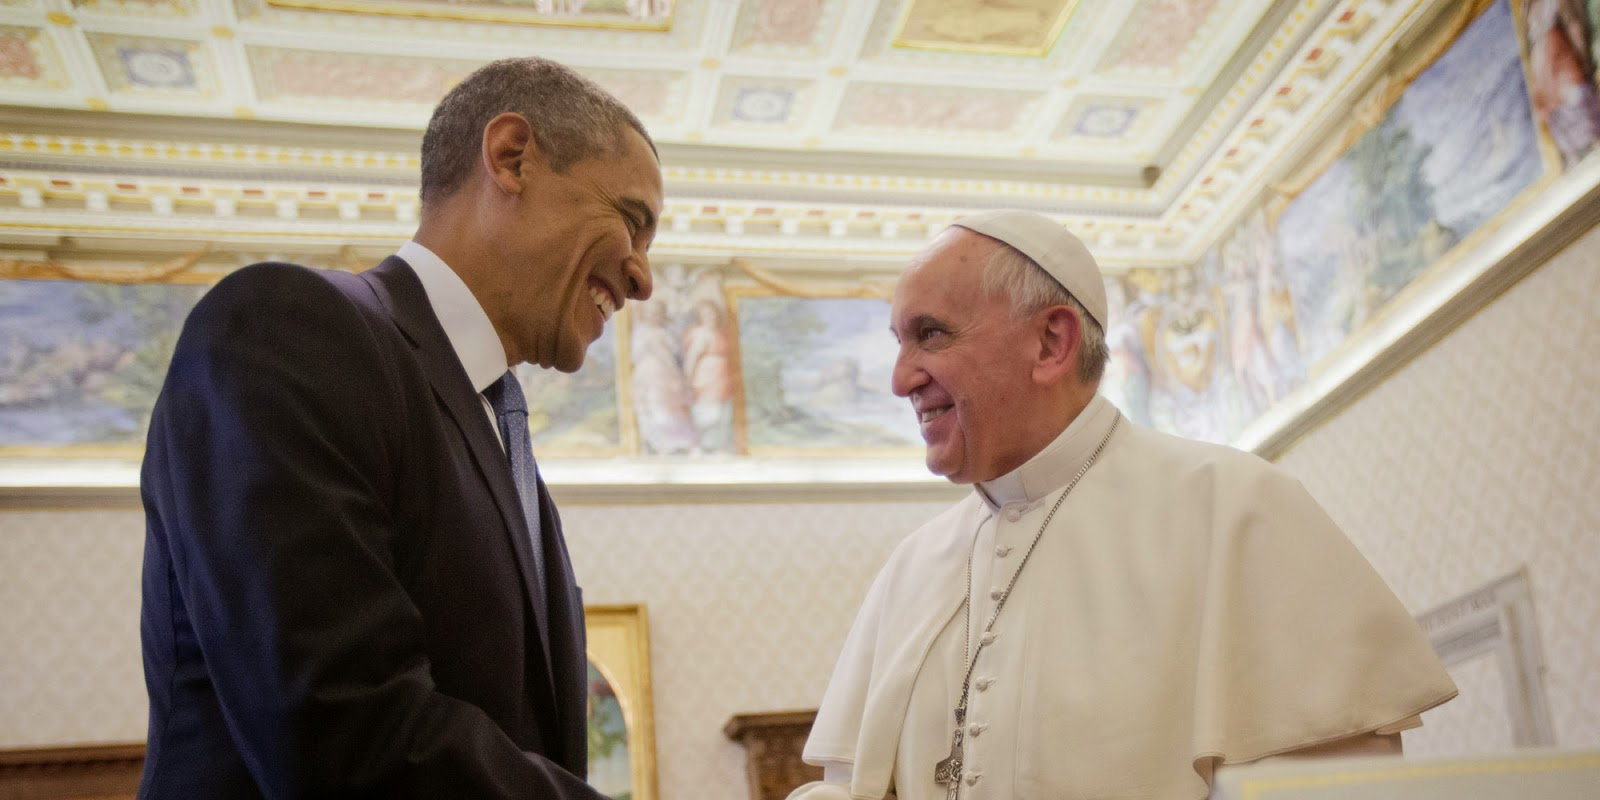 http://www.ilgiornale.it/sites/default/files/foto/2014/12/17/1418835529-papa-francesco-obama.jpg